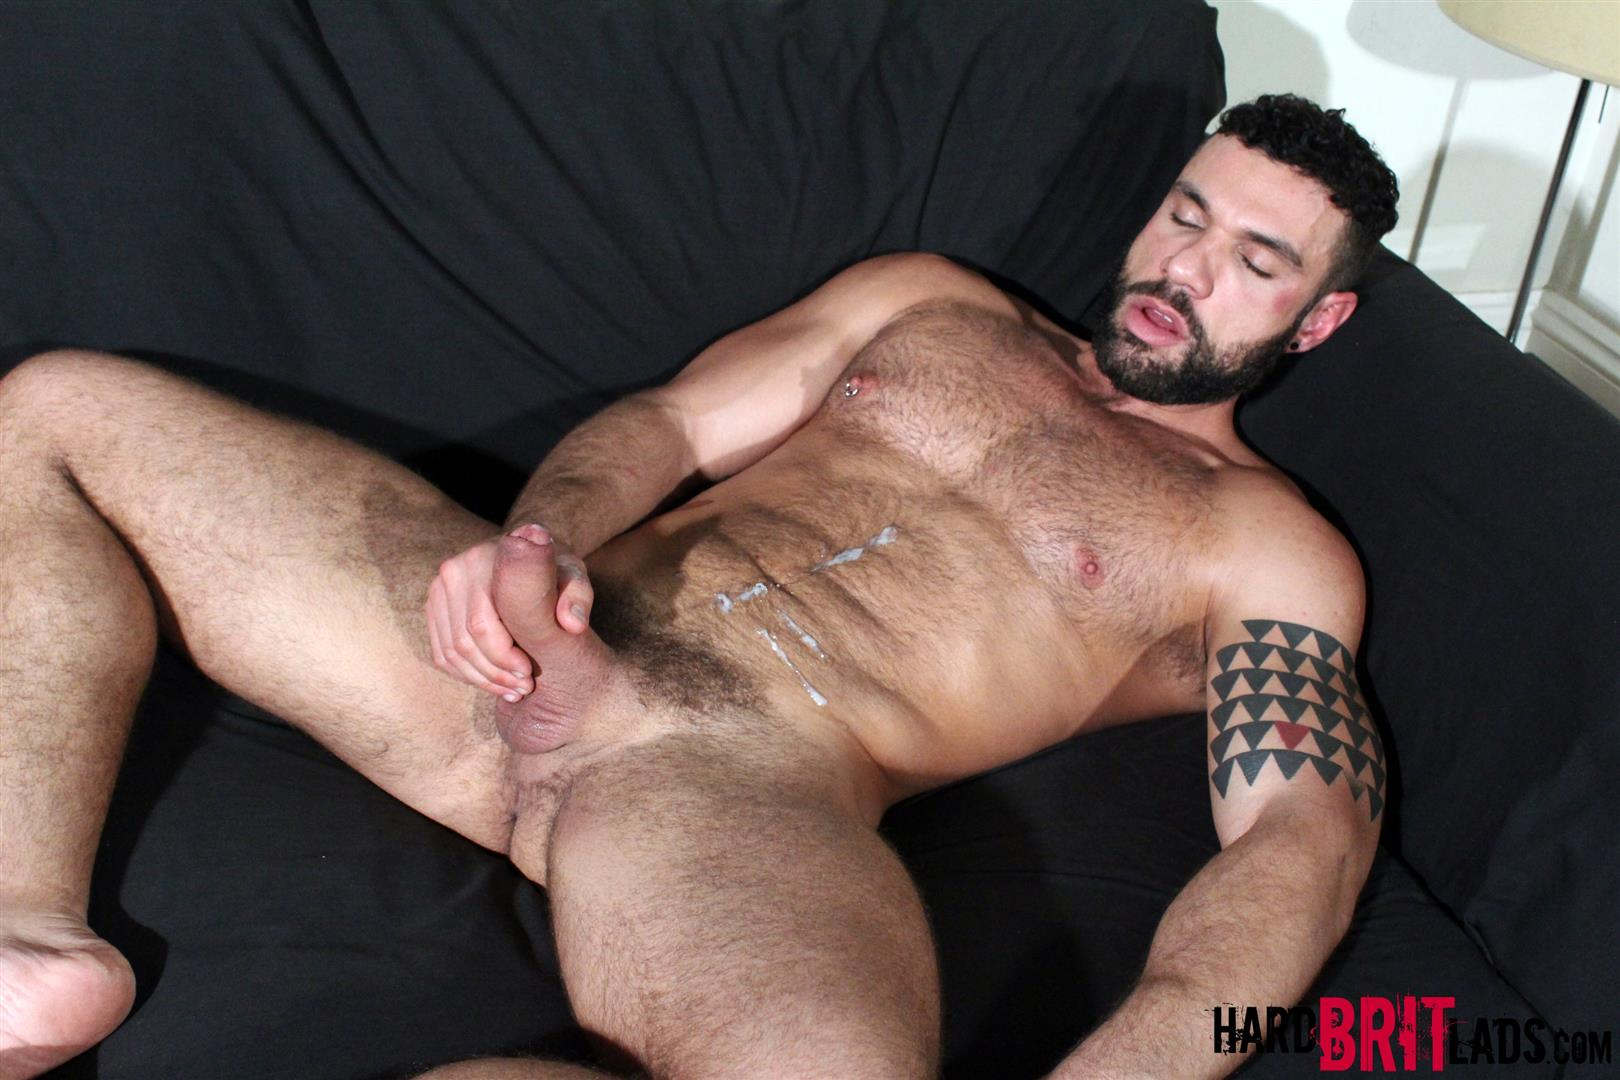 Hard Brit Lads Letterio Amadeo Hairy Rugby Player With A Big uncut Cock Amateur Gay Porn 16 Beefy Hairy Muscle Rugby Player Playing With His Big Uncut Cock